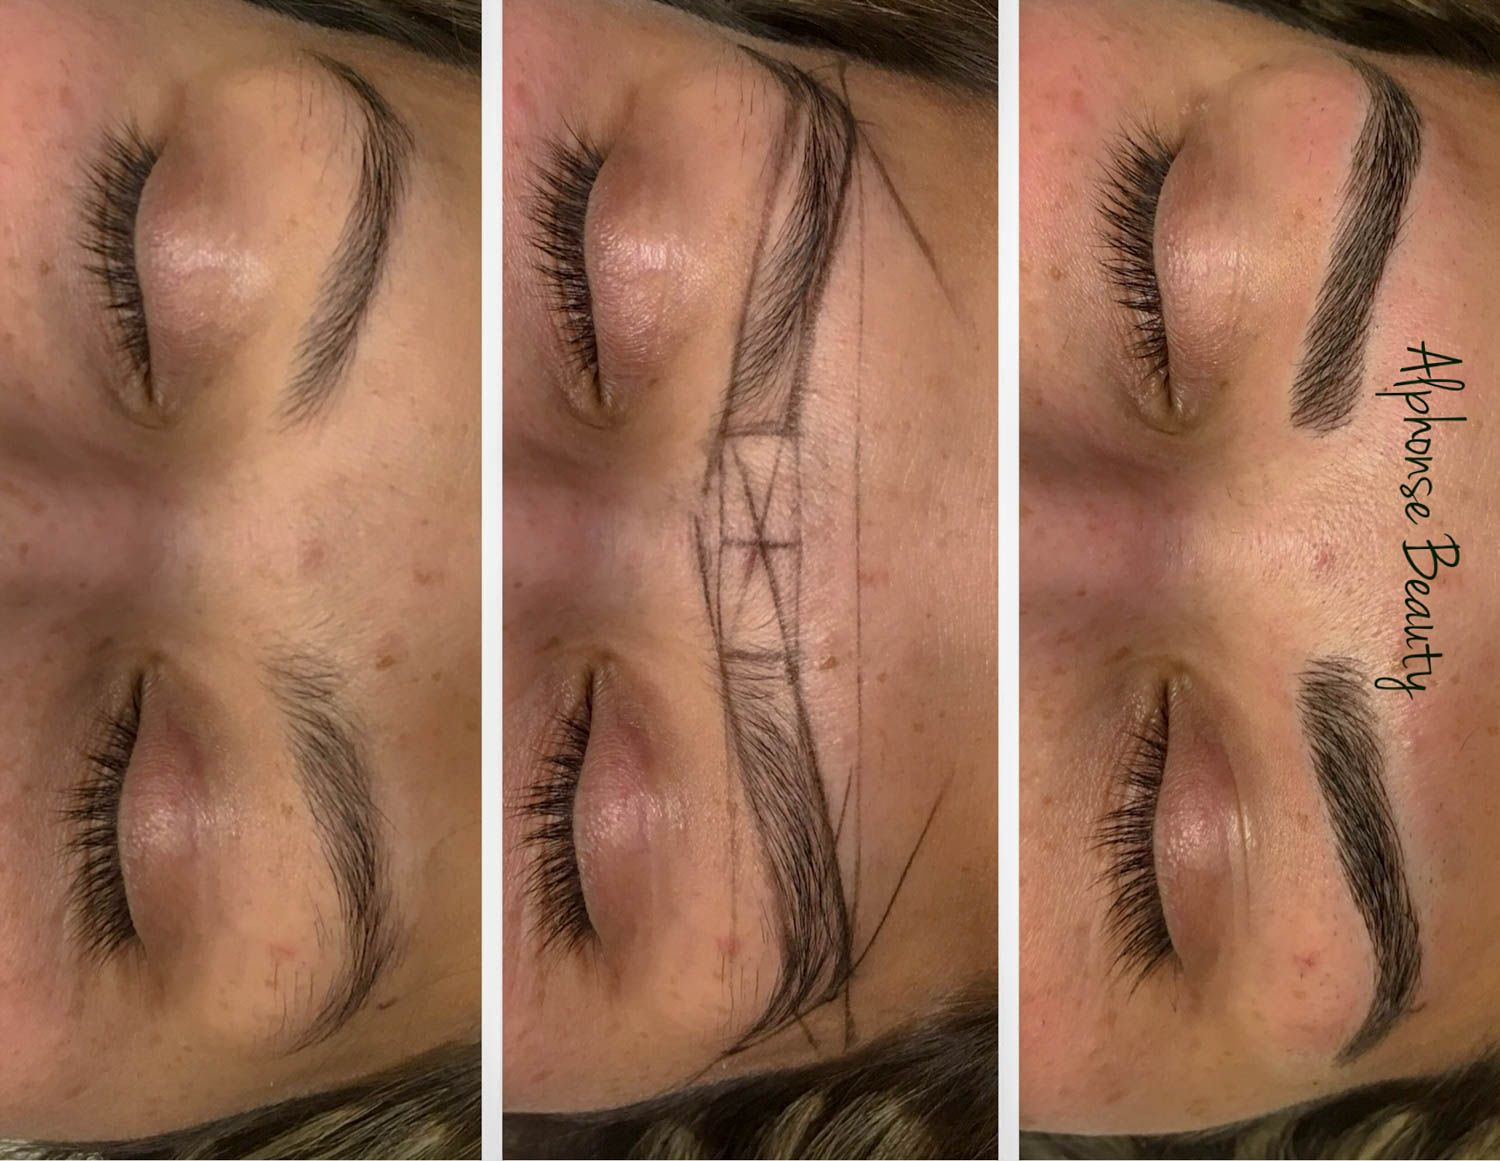 Microblading Procedure Steps with Mapping at Alphonse Beauty Microblading Studio